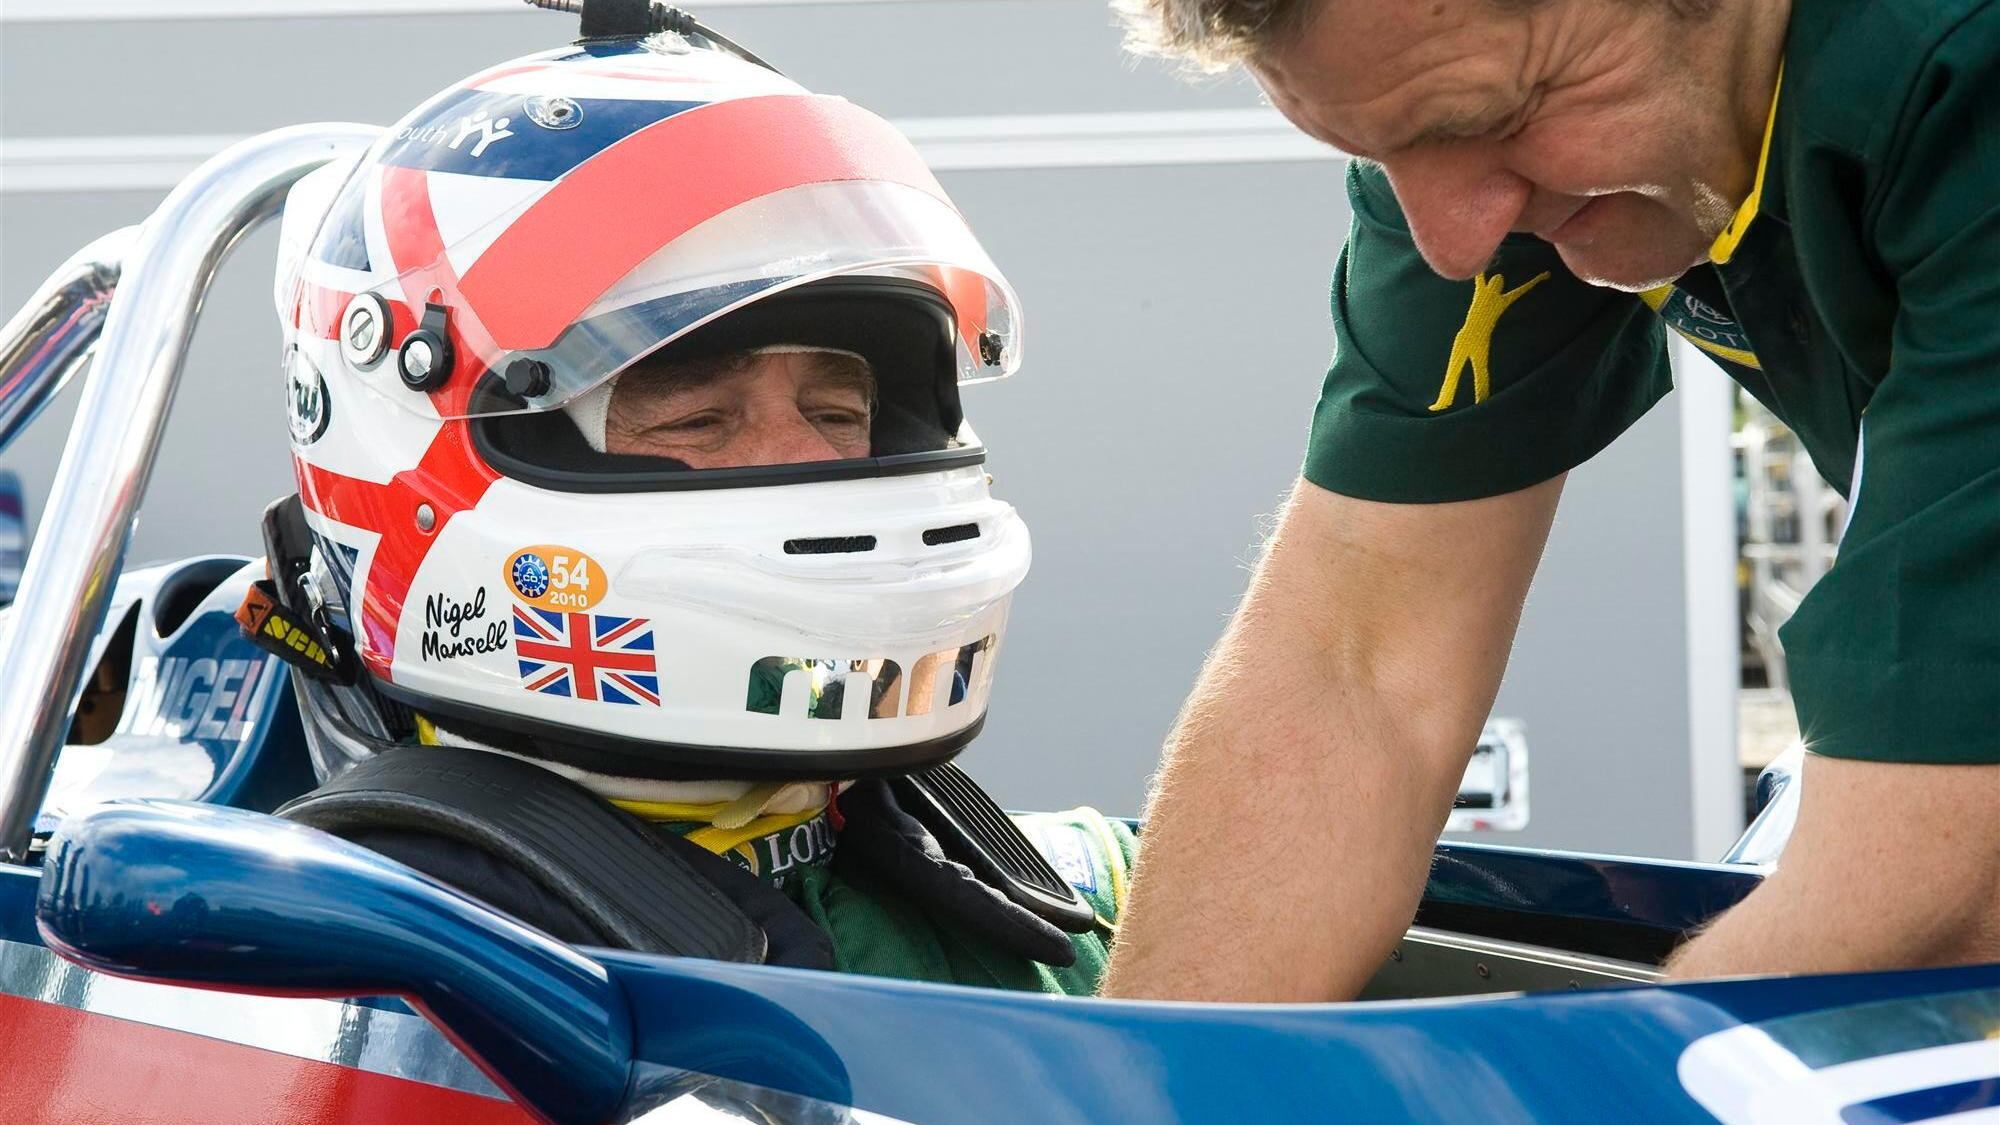 Lotus re-launches its Hethel test track with Nigel Mansell, Jean Alesi